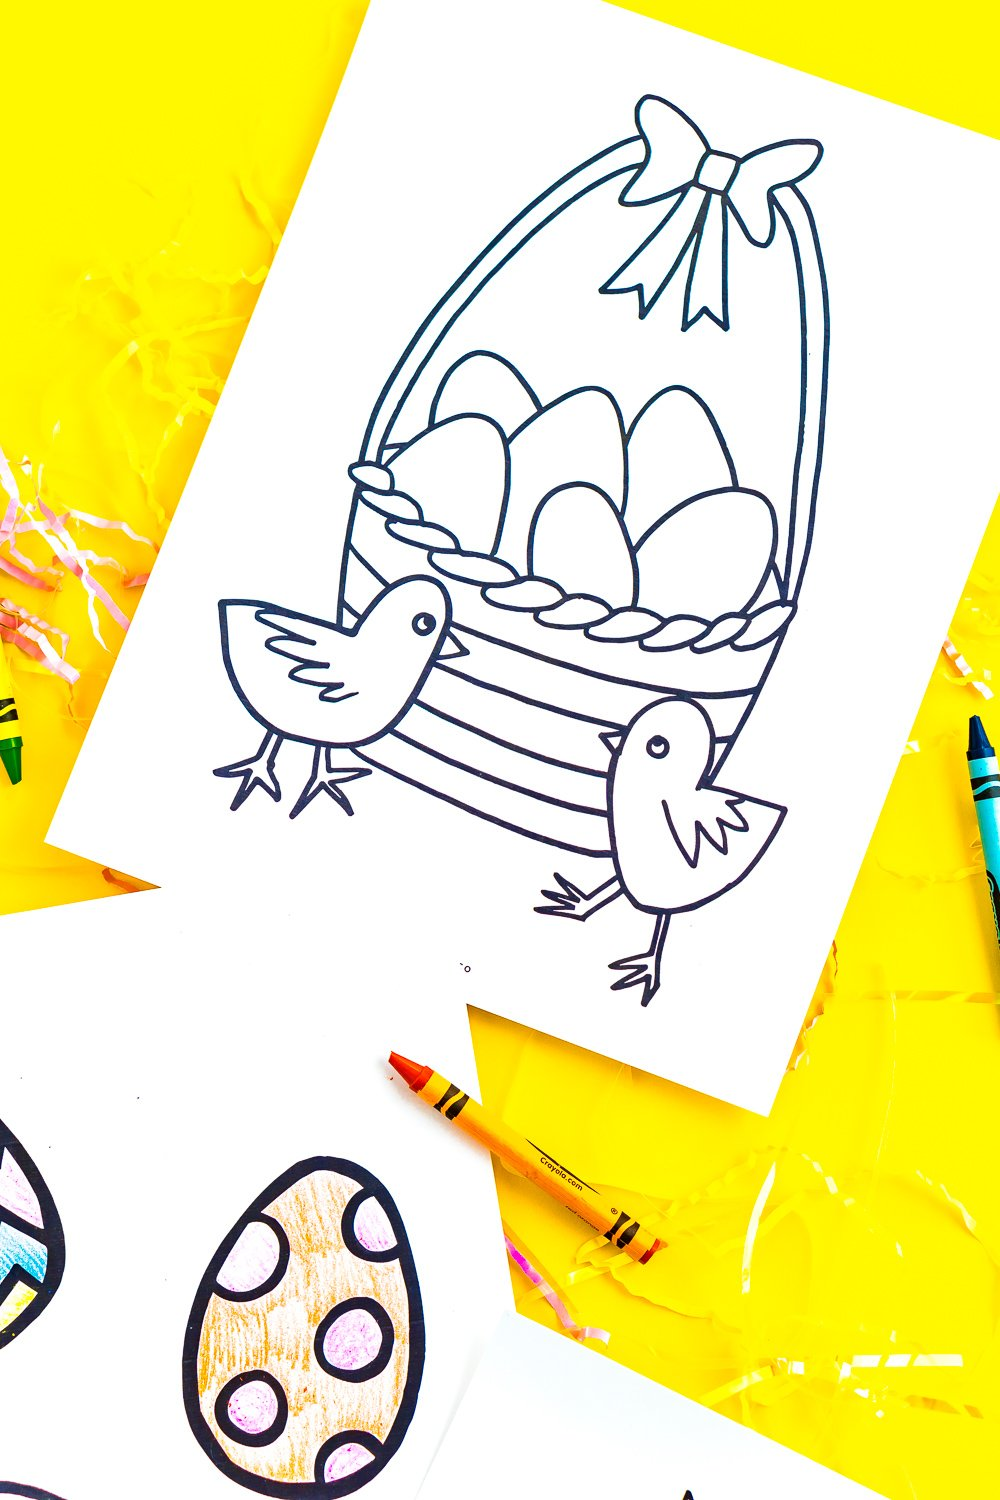 Printable coloring page with an easter basket and chick design on a yellow background.